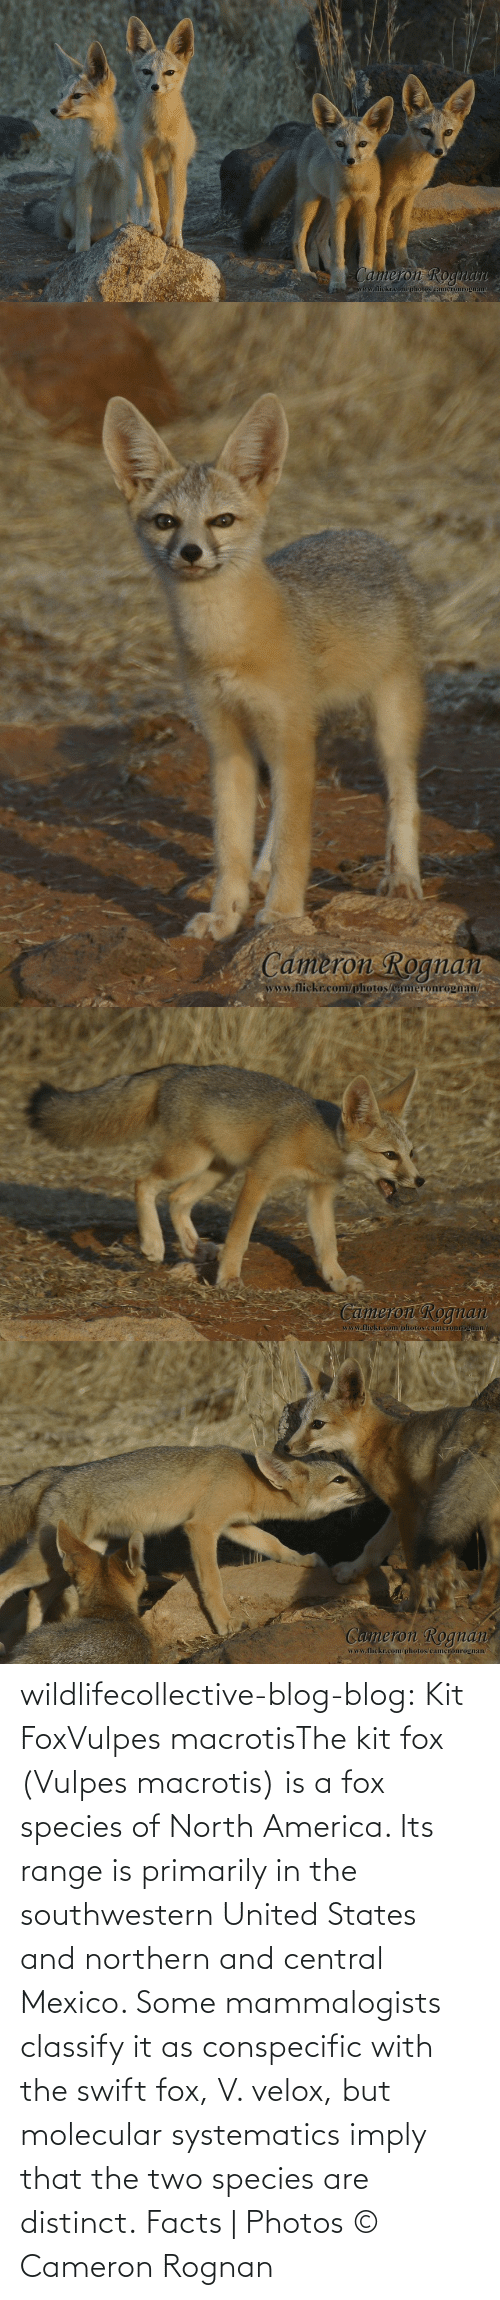 America, Facts, and Tumblr: wildlifecollective-blog-blog:  Kit FoxVulpes macrotisThe kit fox (Vulpes macrotis) is a fox species of North America. Its range is primarily in the southwestern United States and northern and central Mexico. Some mammalogists classify it as conspecific with the swift fox, V. velox, but molecular systematics imply that the two species are distinct.Facts | Photos © Cameron Rognan